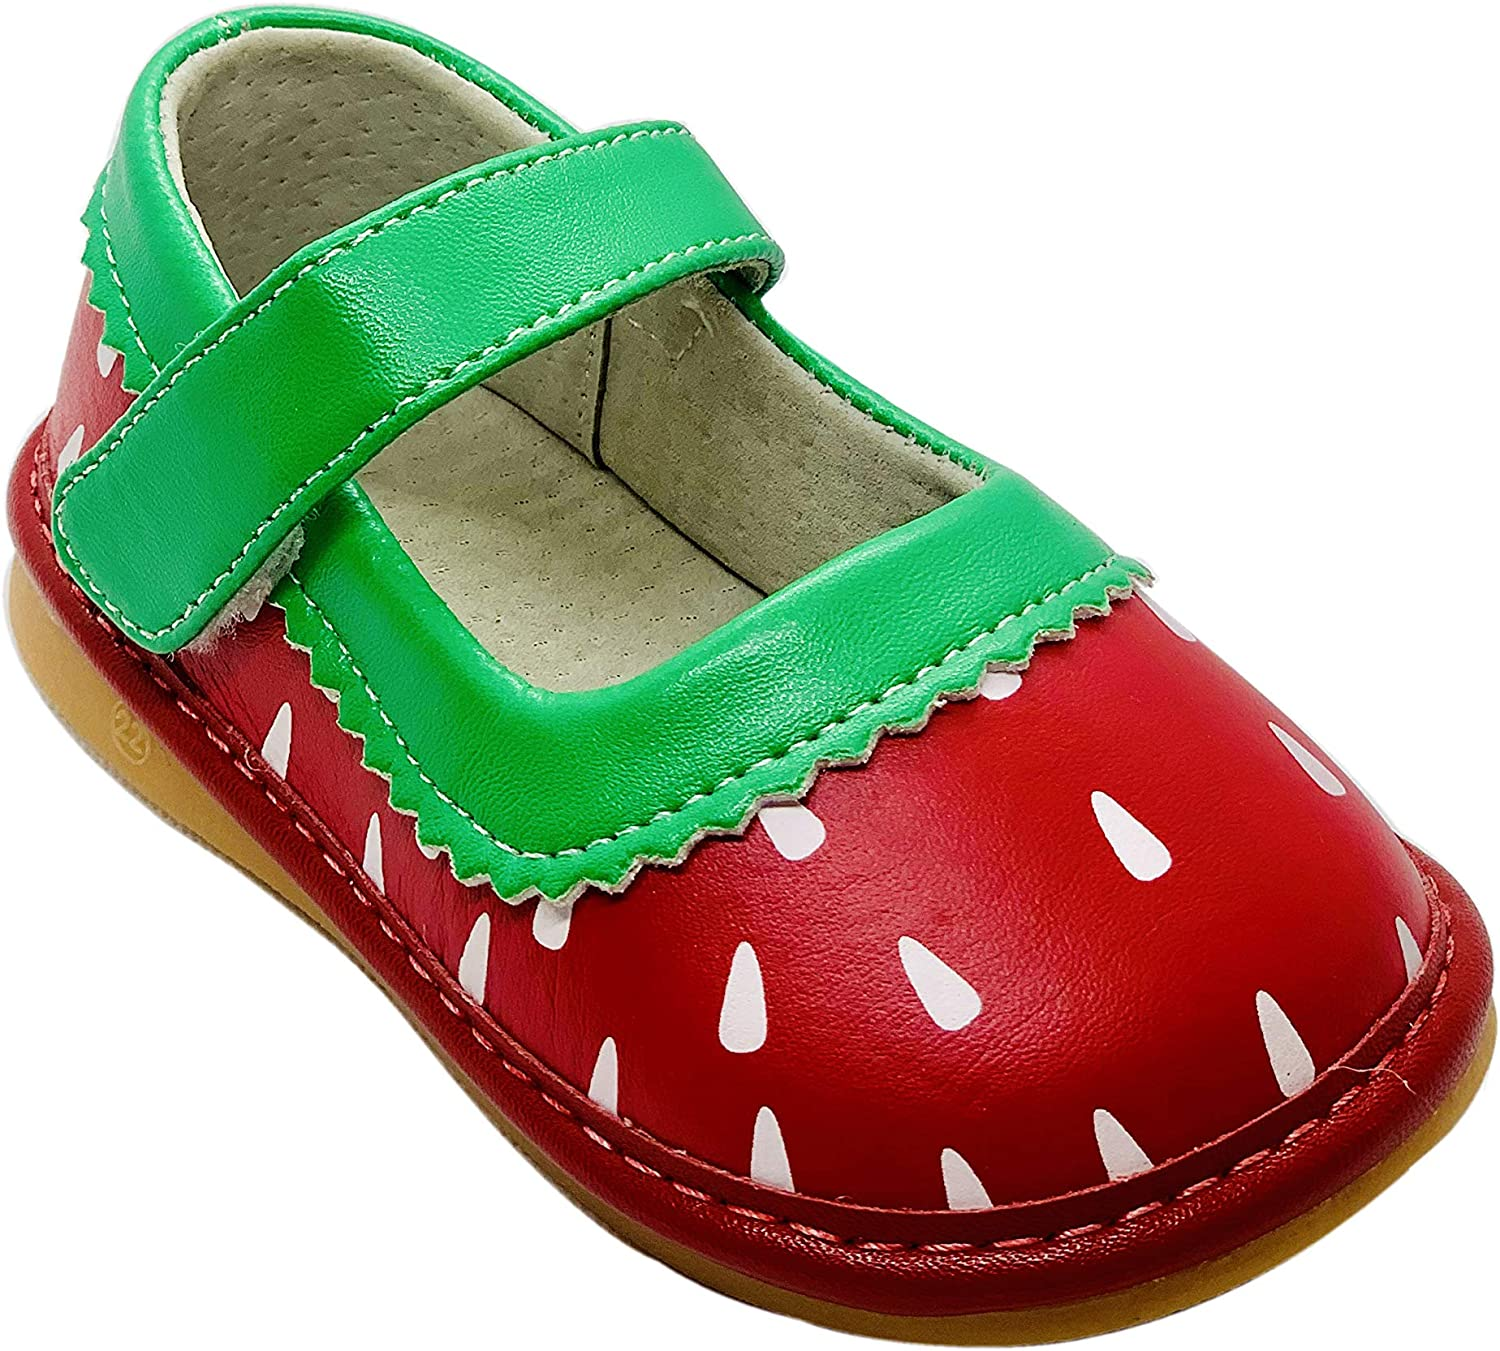 Salini Strawberry Squeaky Shoes for Toddlers with Removable Squeaker